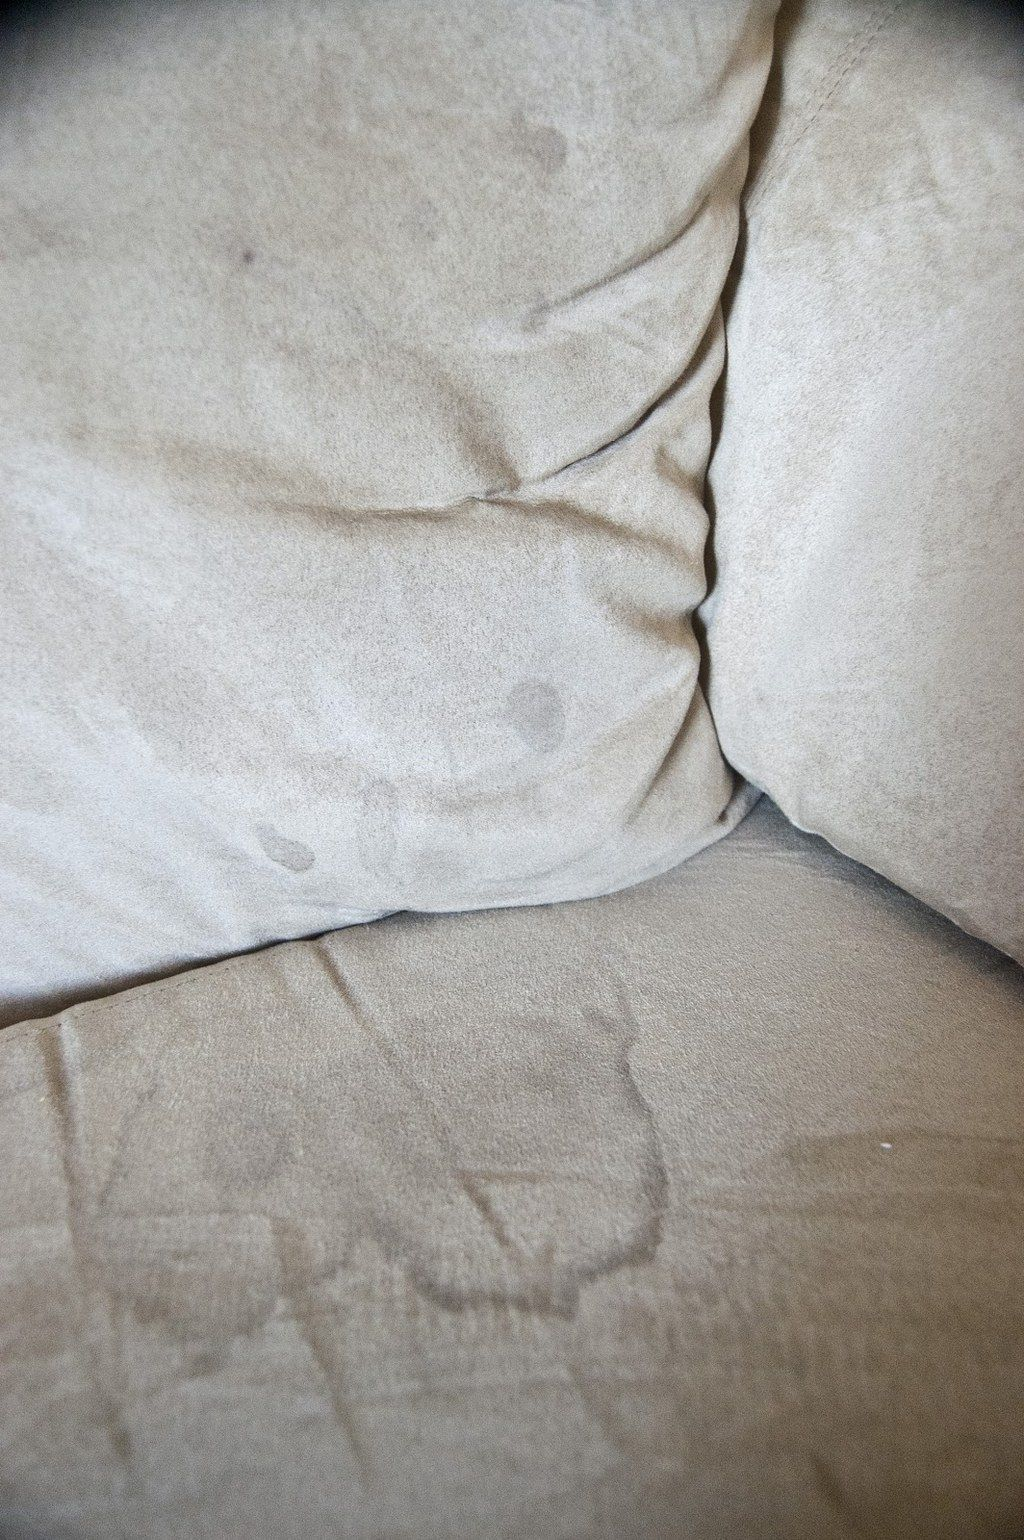 Get All The Stains Out Of A Microfiber Couch With The Help